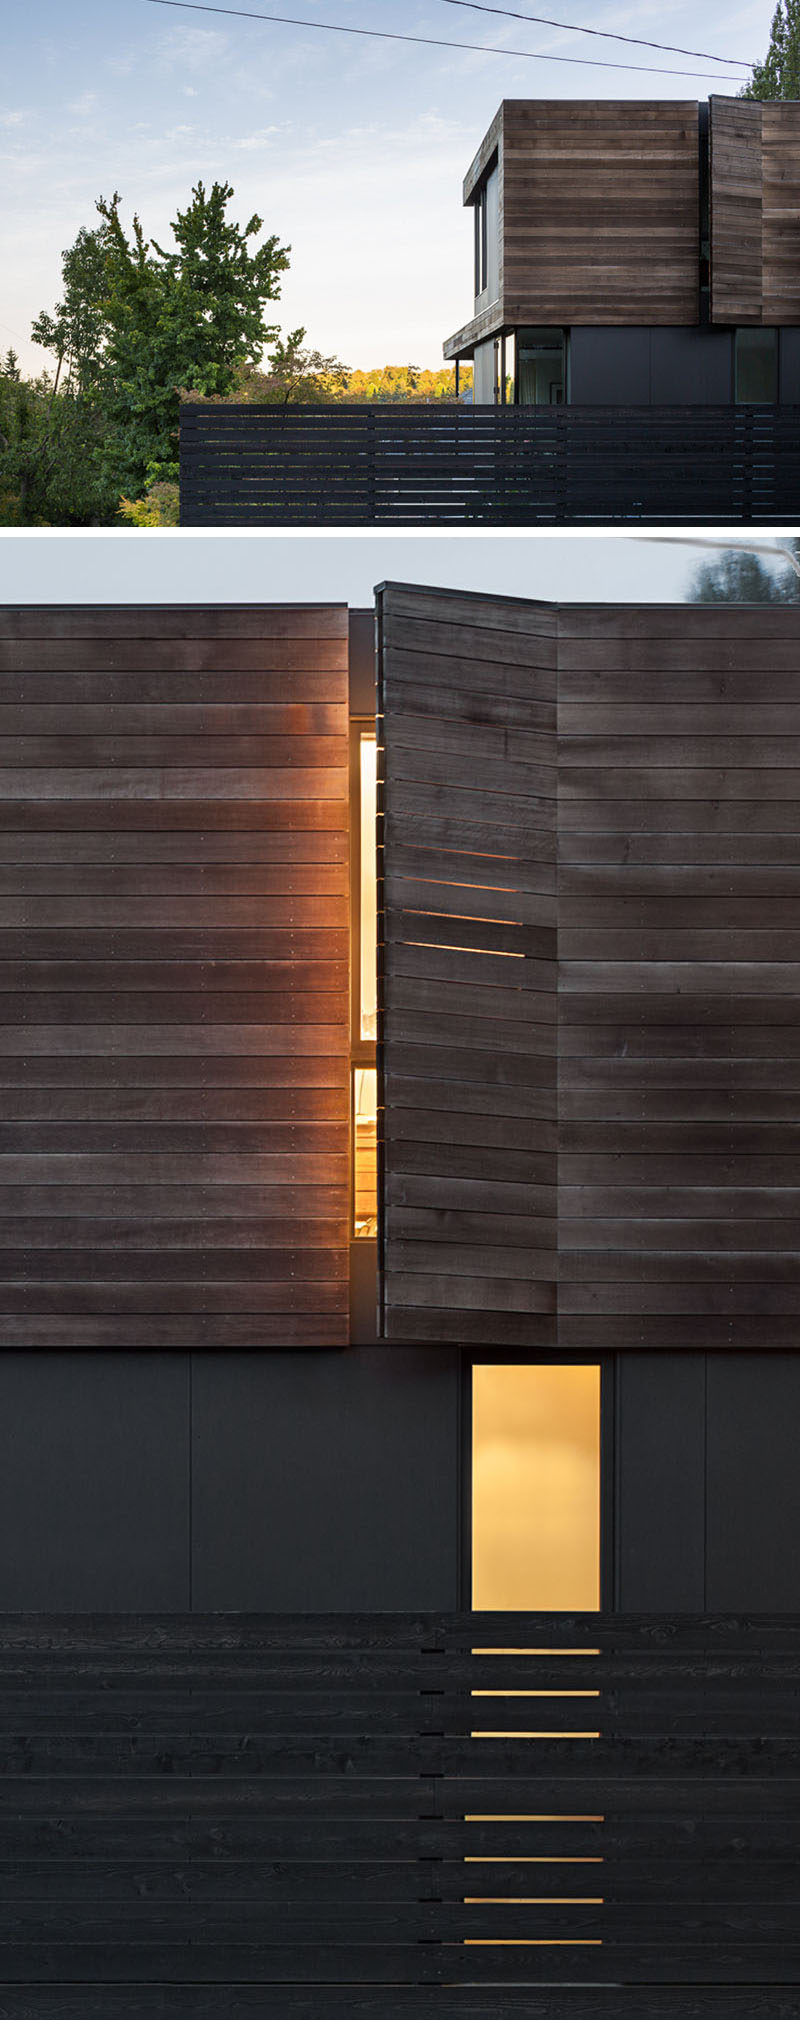 The exterior of this modern house has window covers designed to blend in seamlessly with the wood facade.